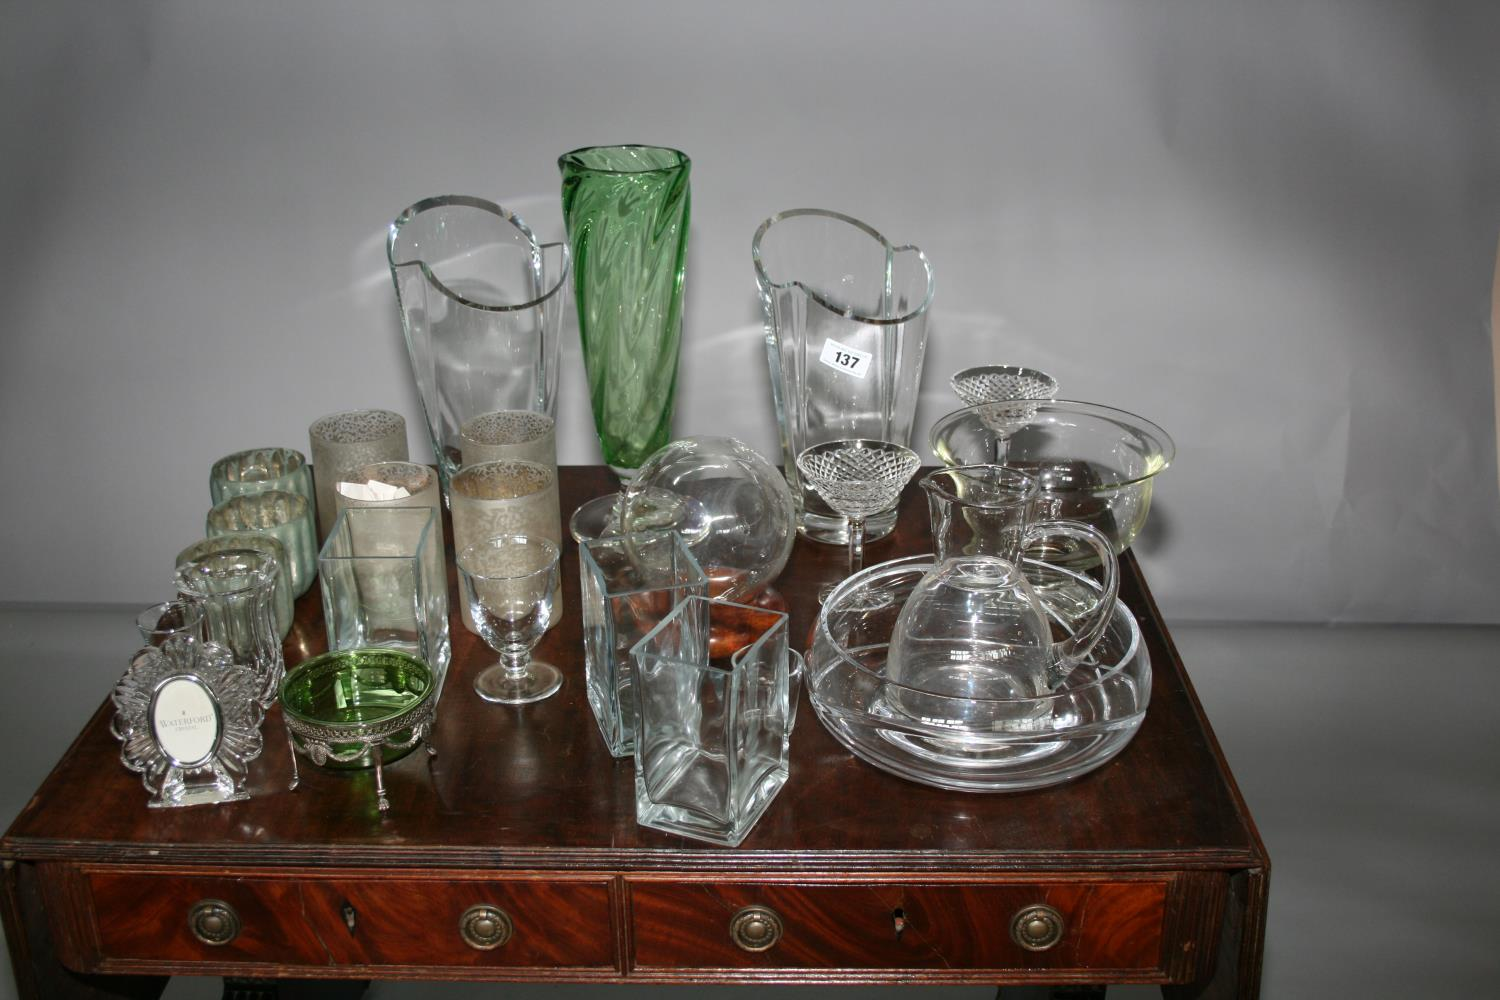 Collection of glass vases and glass wear.